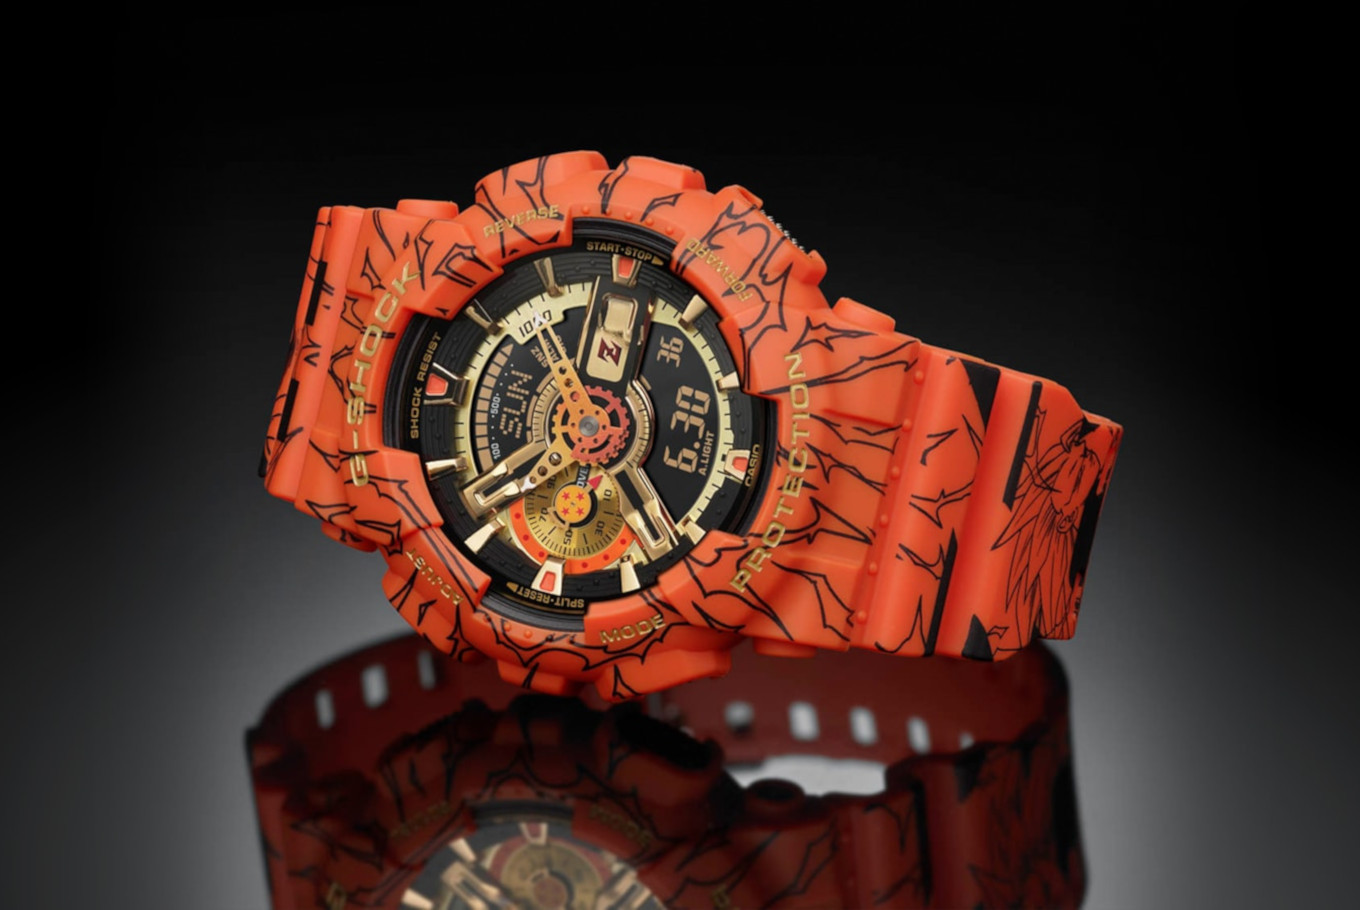 Limited edition G-SHOCK x Dragon Ball Z watch now available in Indonesia